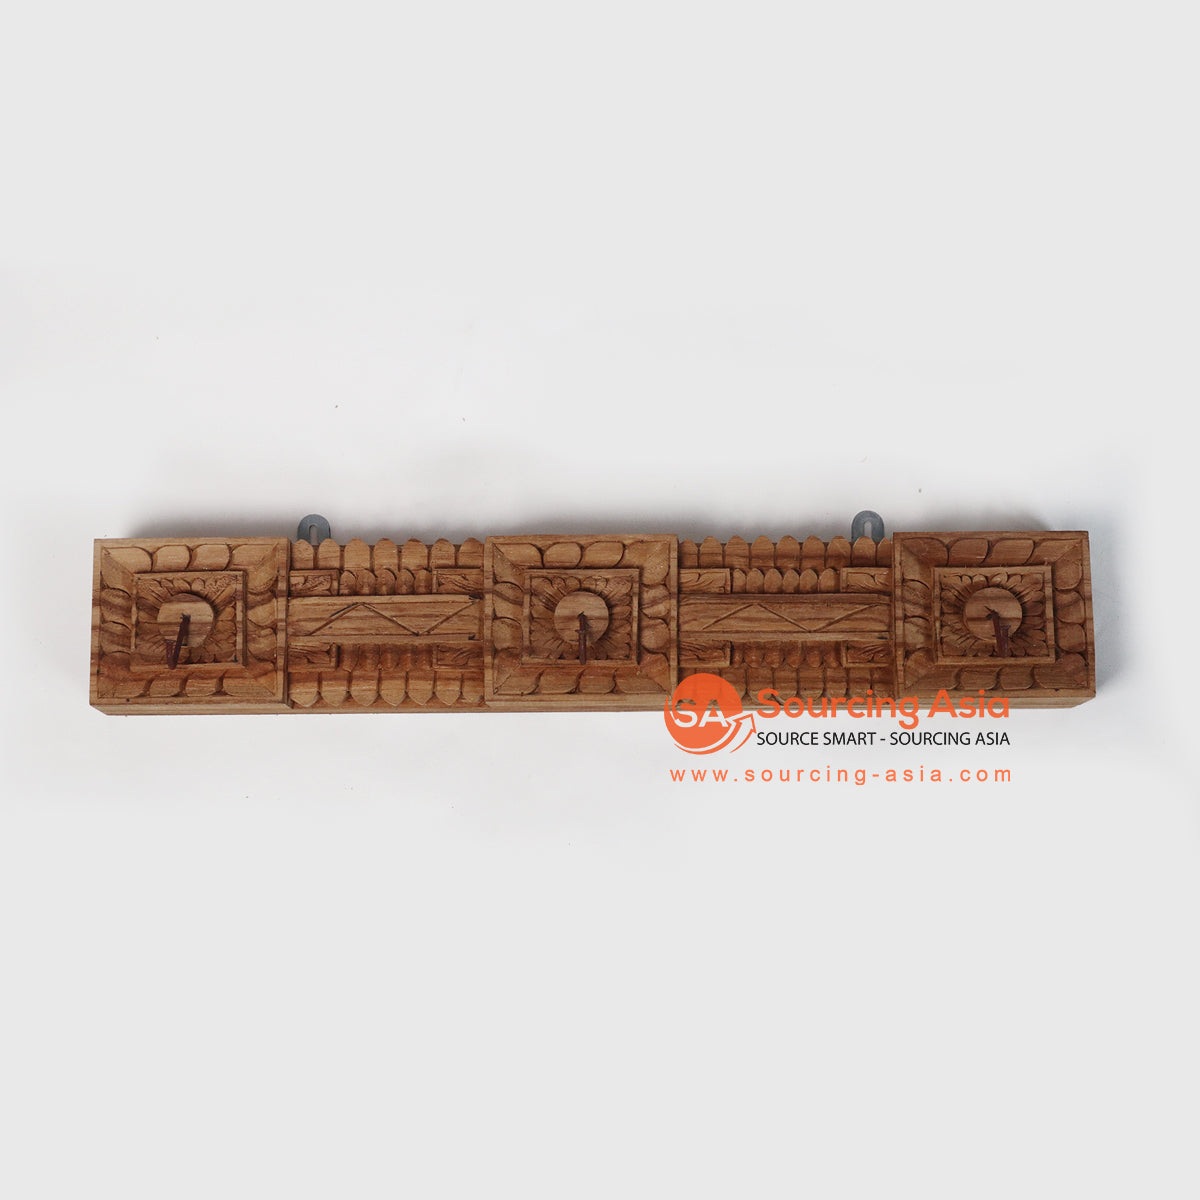 SHL001 WOODEN WALL DECORATION